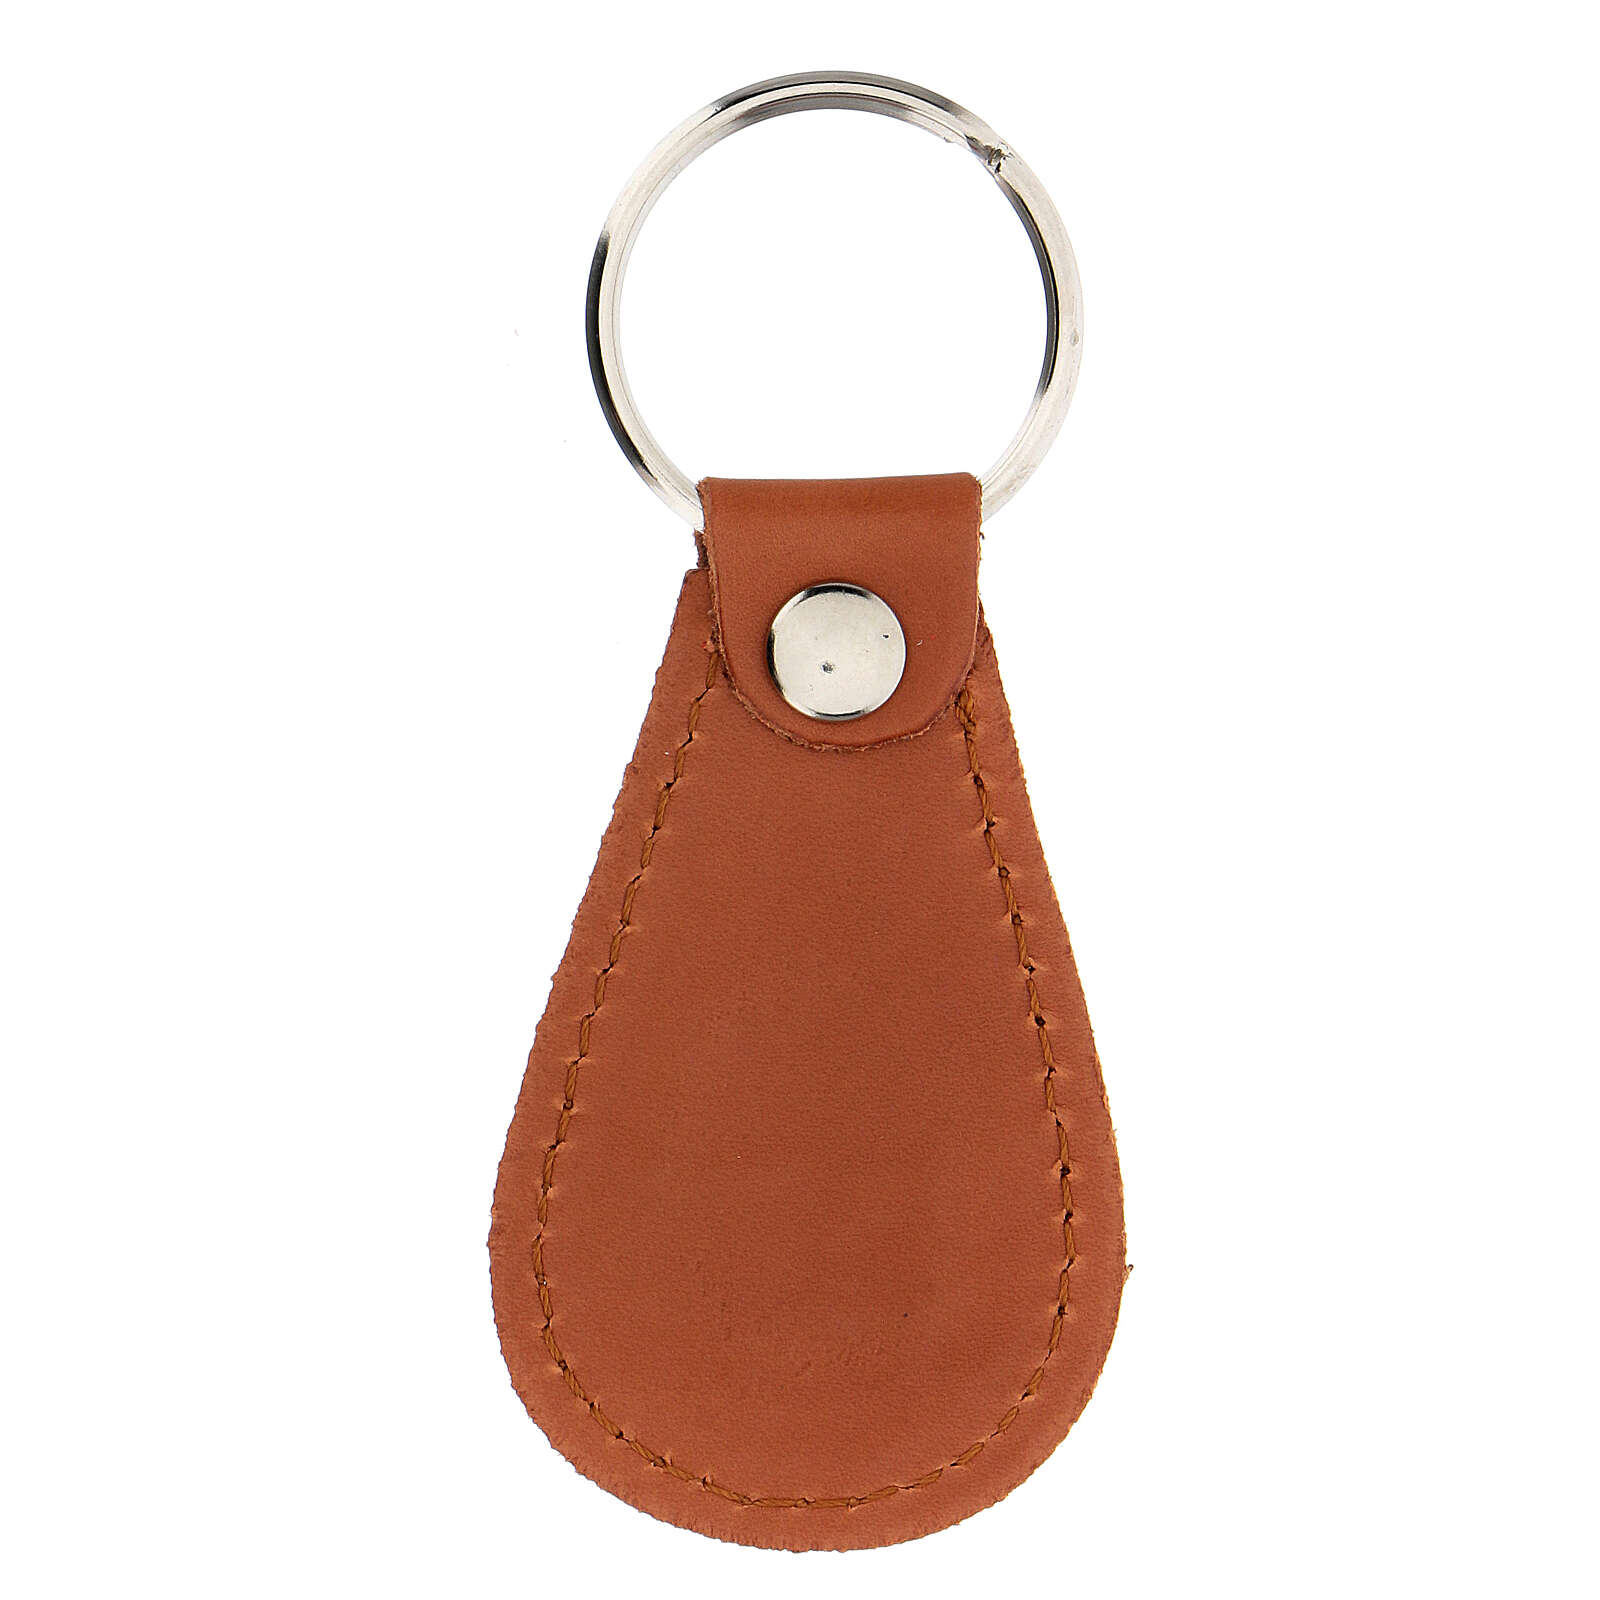 St Christopher drop-shaped keyring Gute Fahrt real leather 3